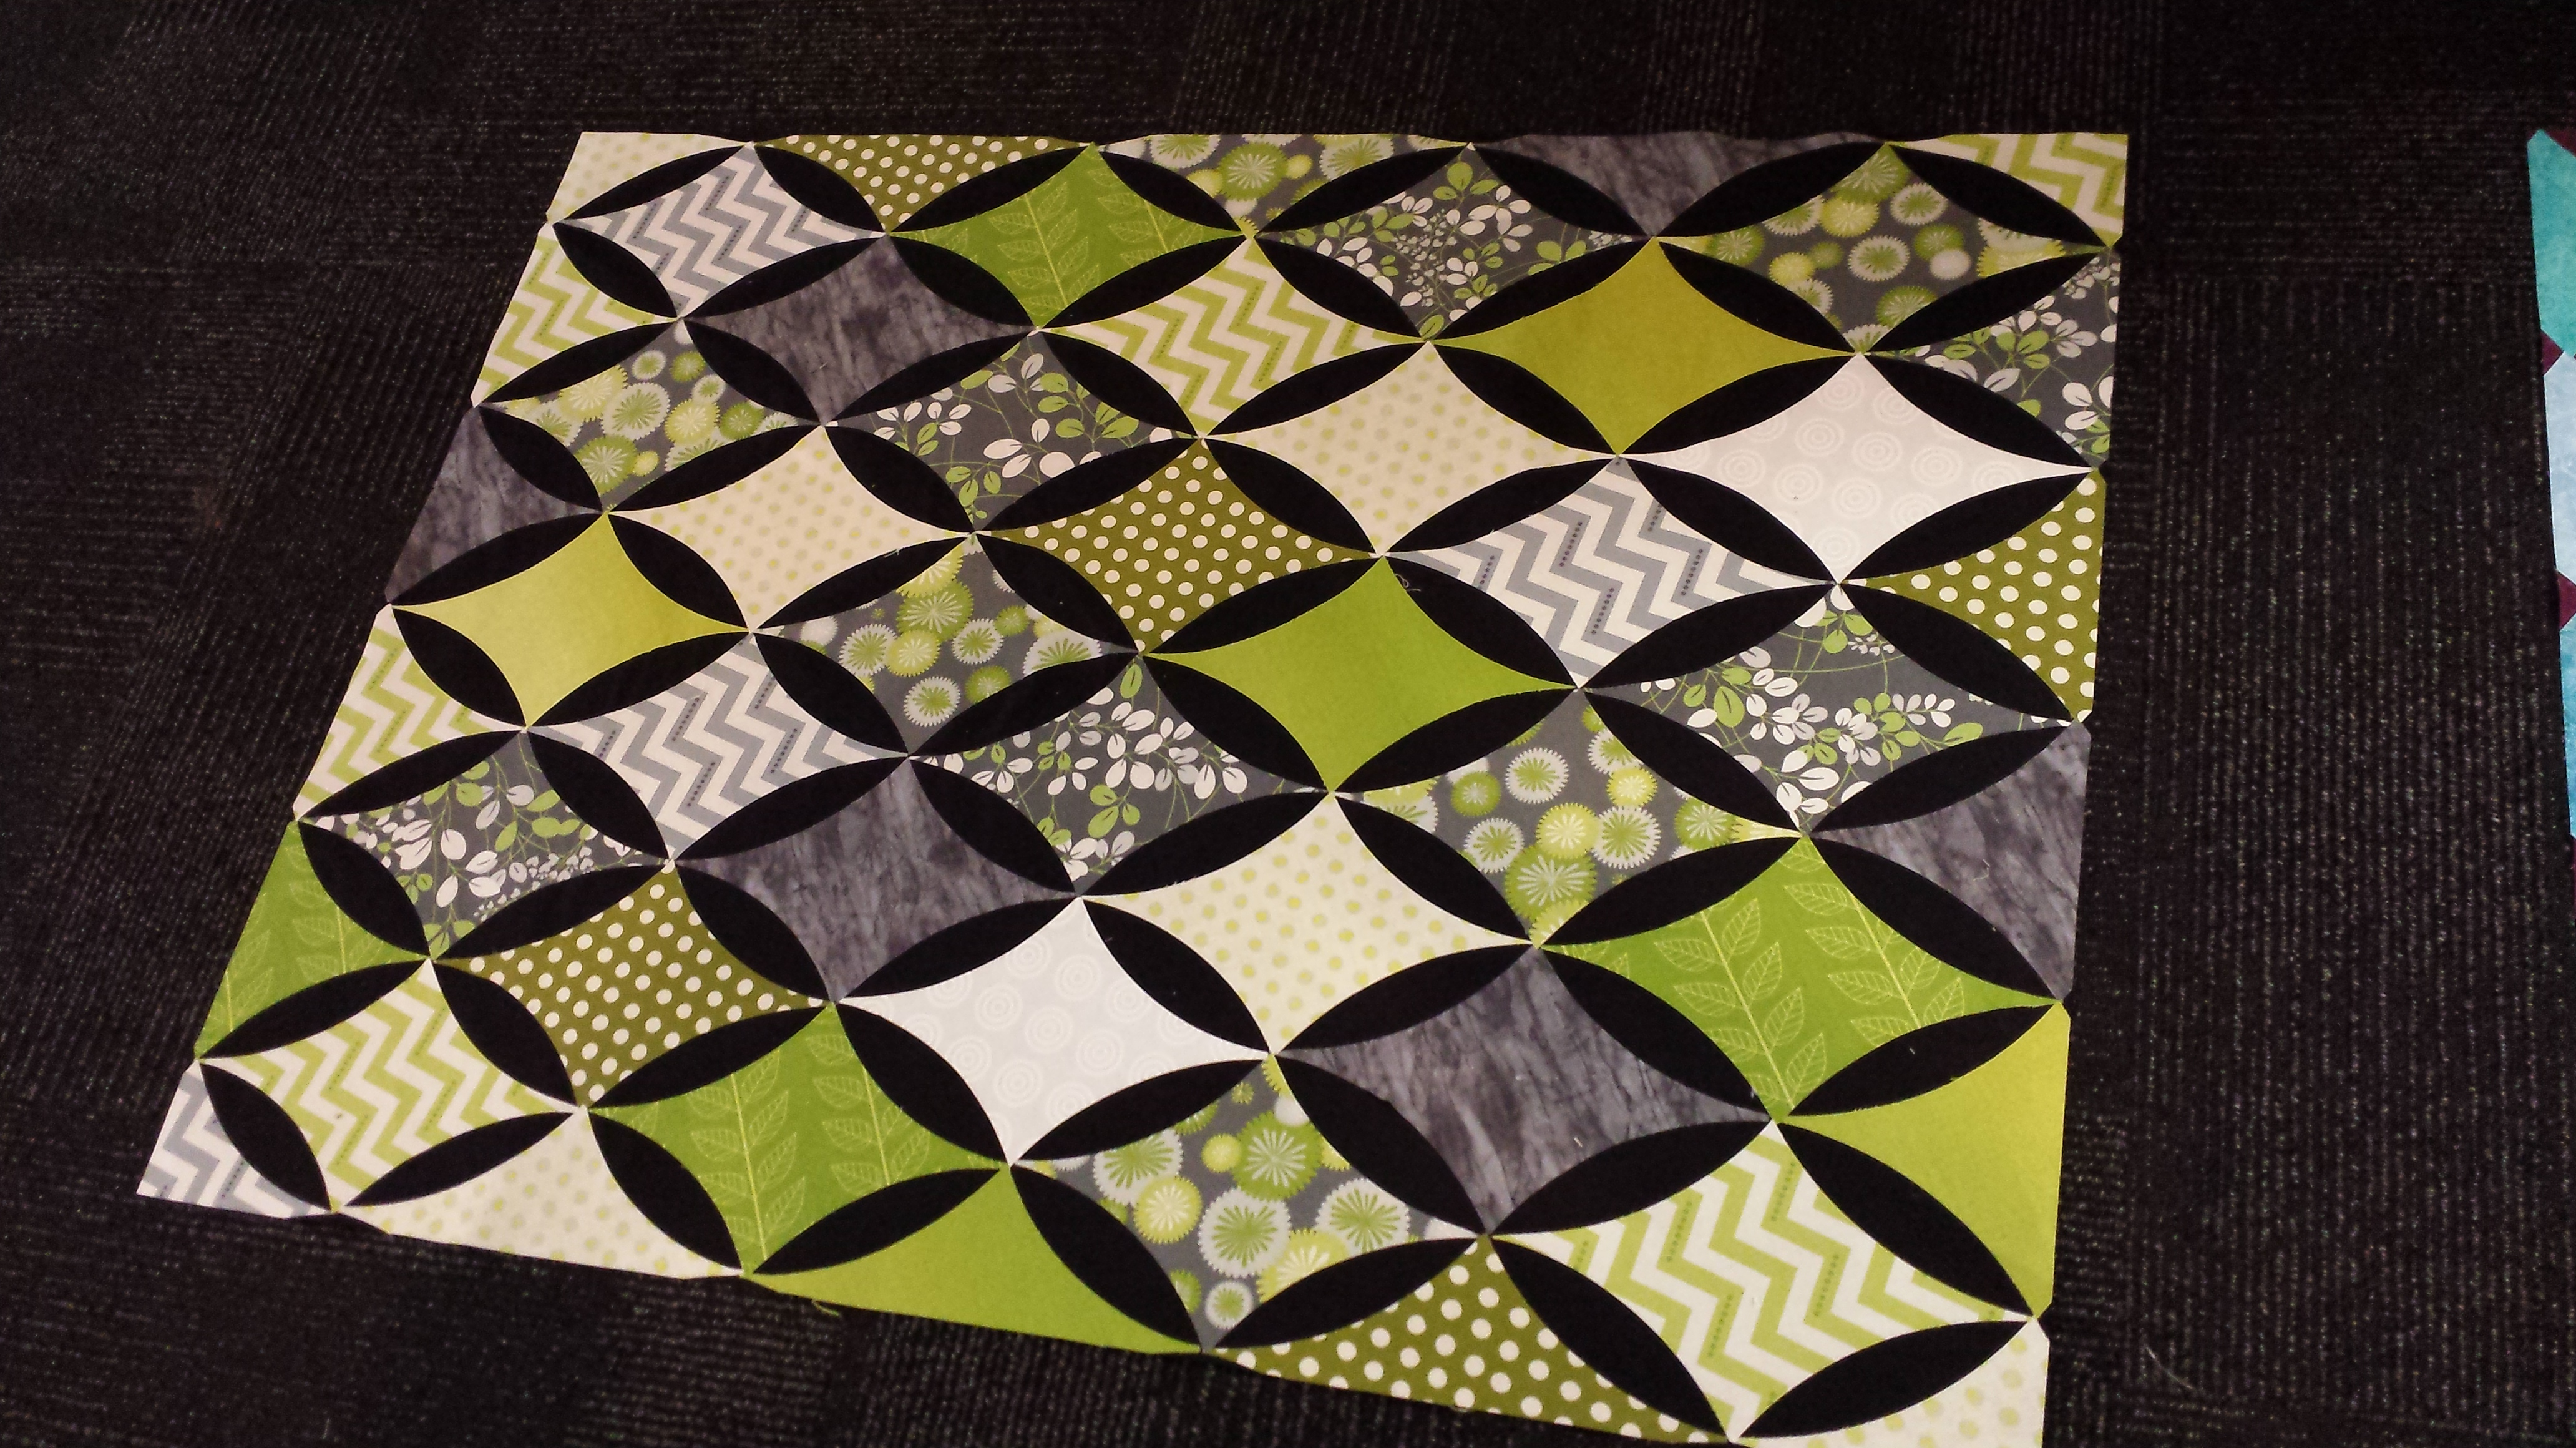 Simply Quilts - Show News, Reviews, Recaps and Photos - m Making quilts with photos